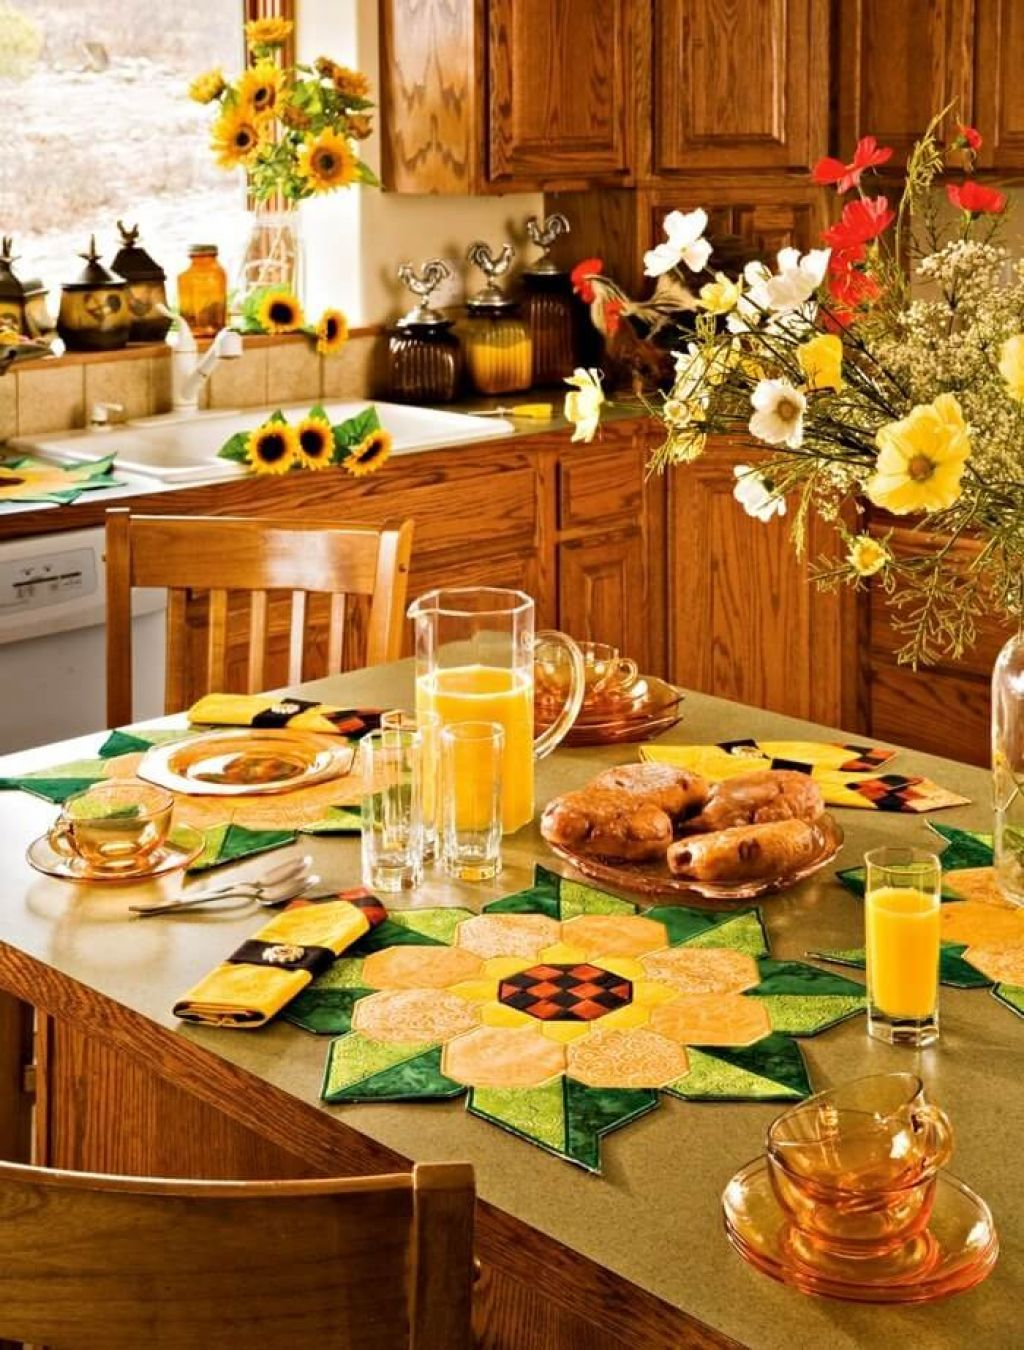 Sunflower kitchen theme with wooden cabinets